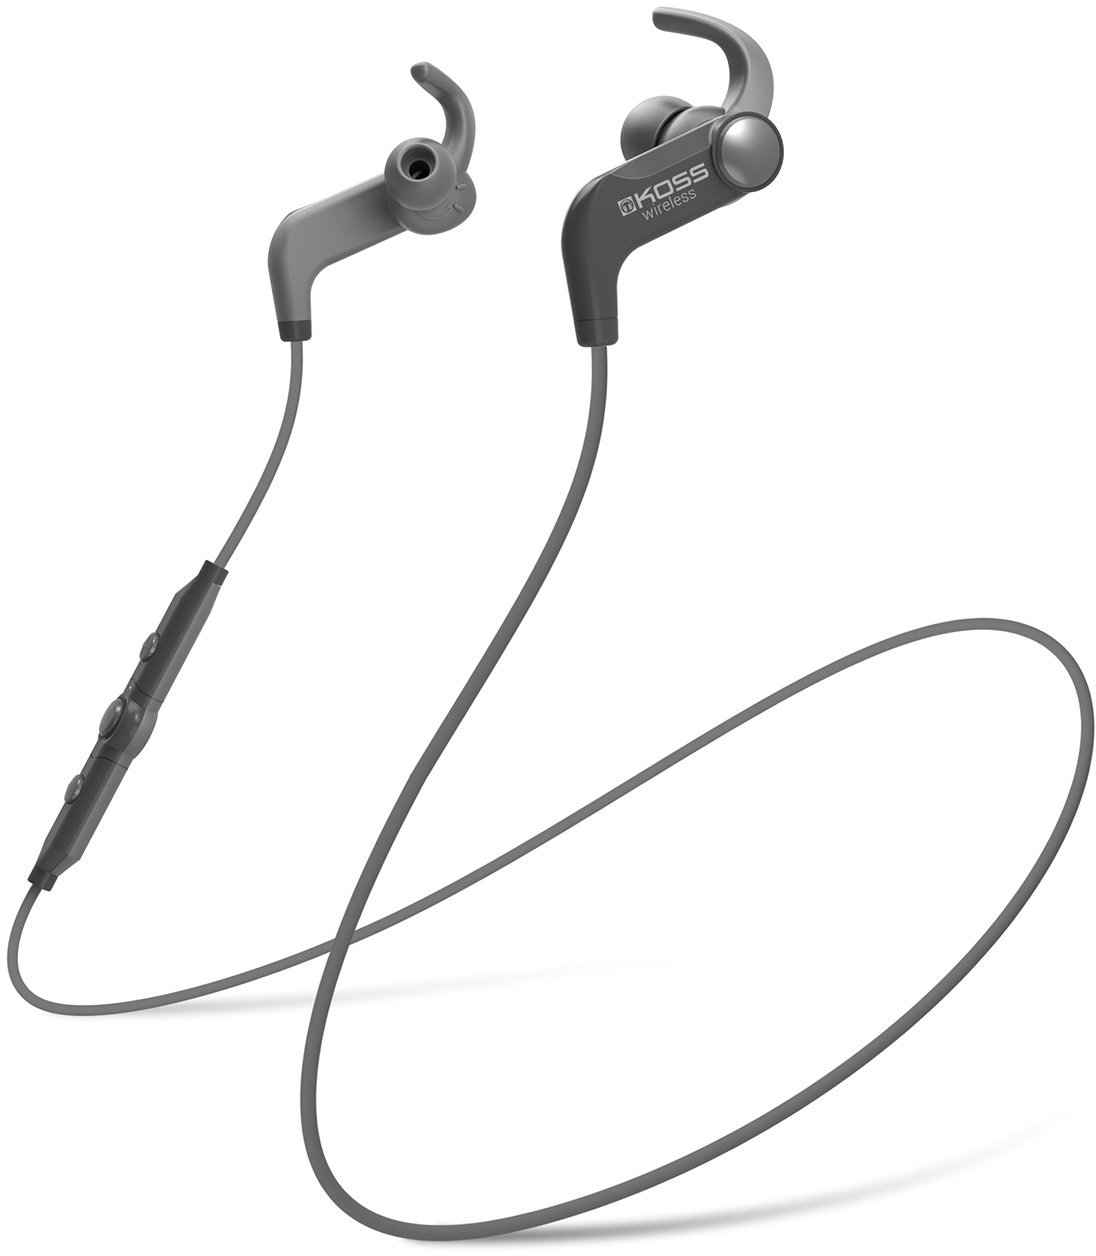 Koss BT190iK Wireless Bluetooth Earbuds, In-line Microphone,Touch Controls-Black by Koss